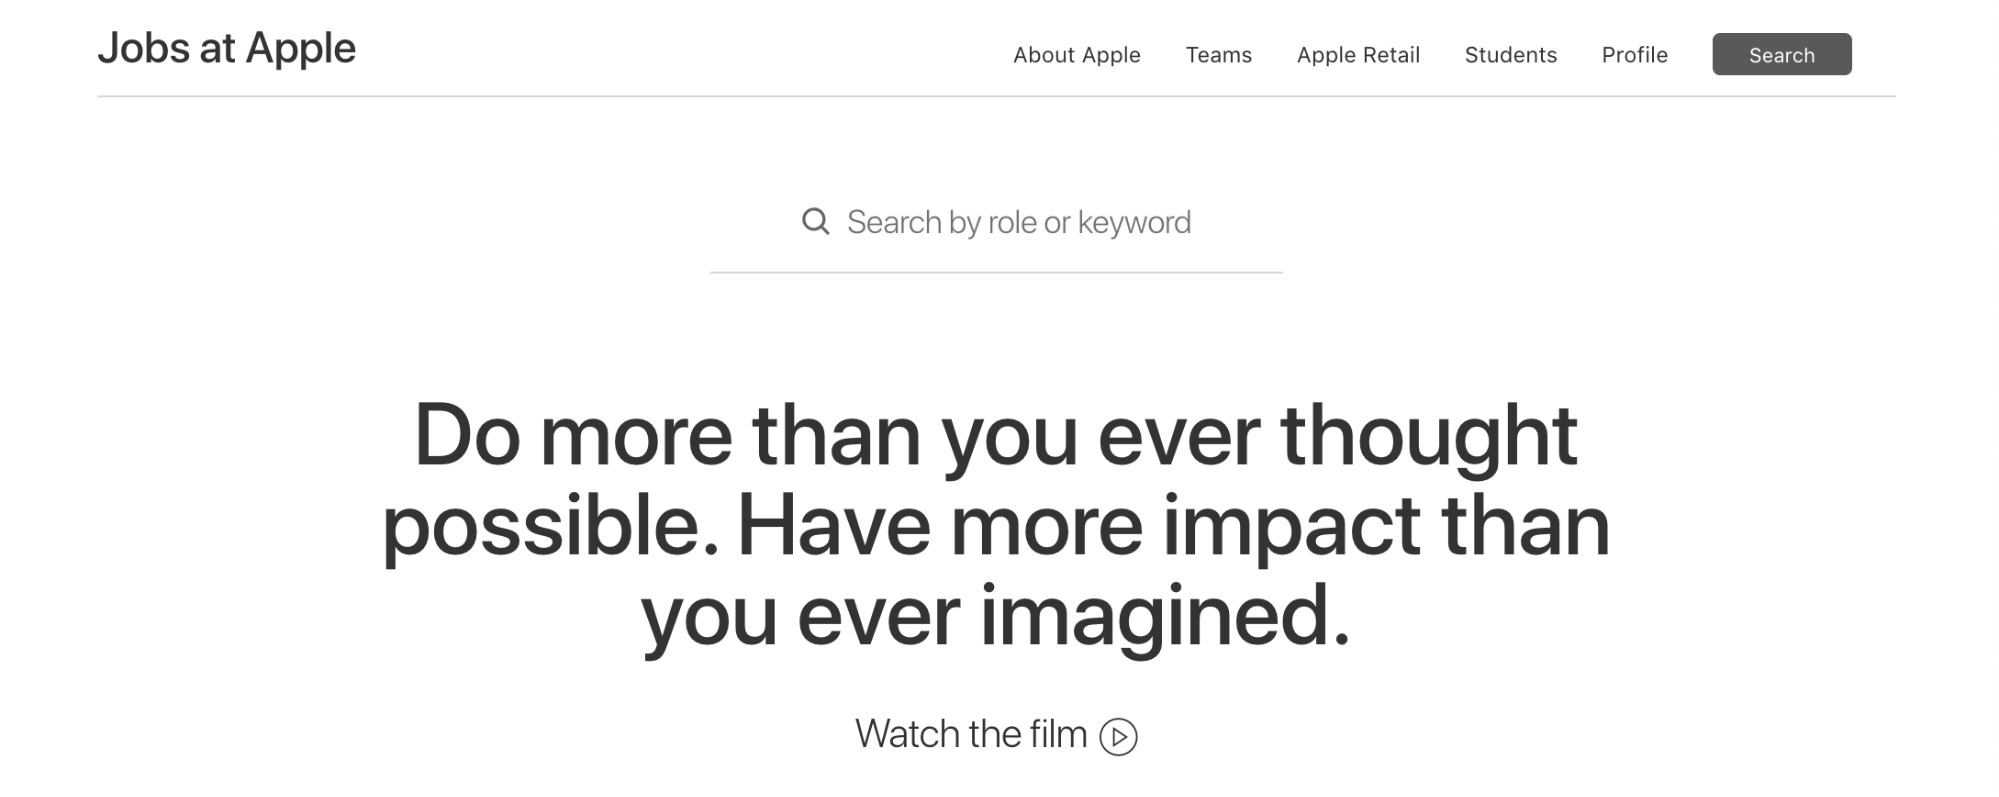 Apple's employer brand enforces their organization's culture.